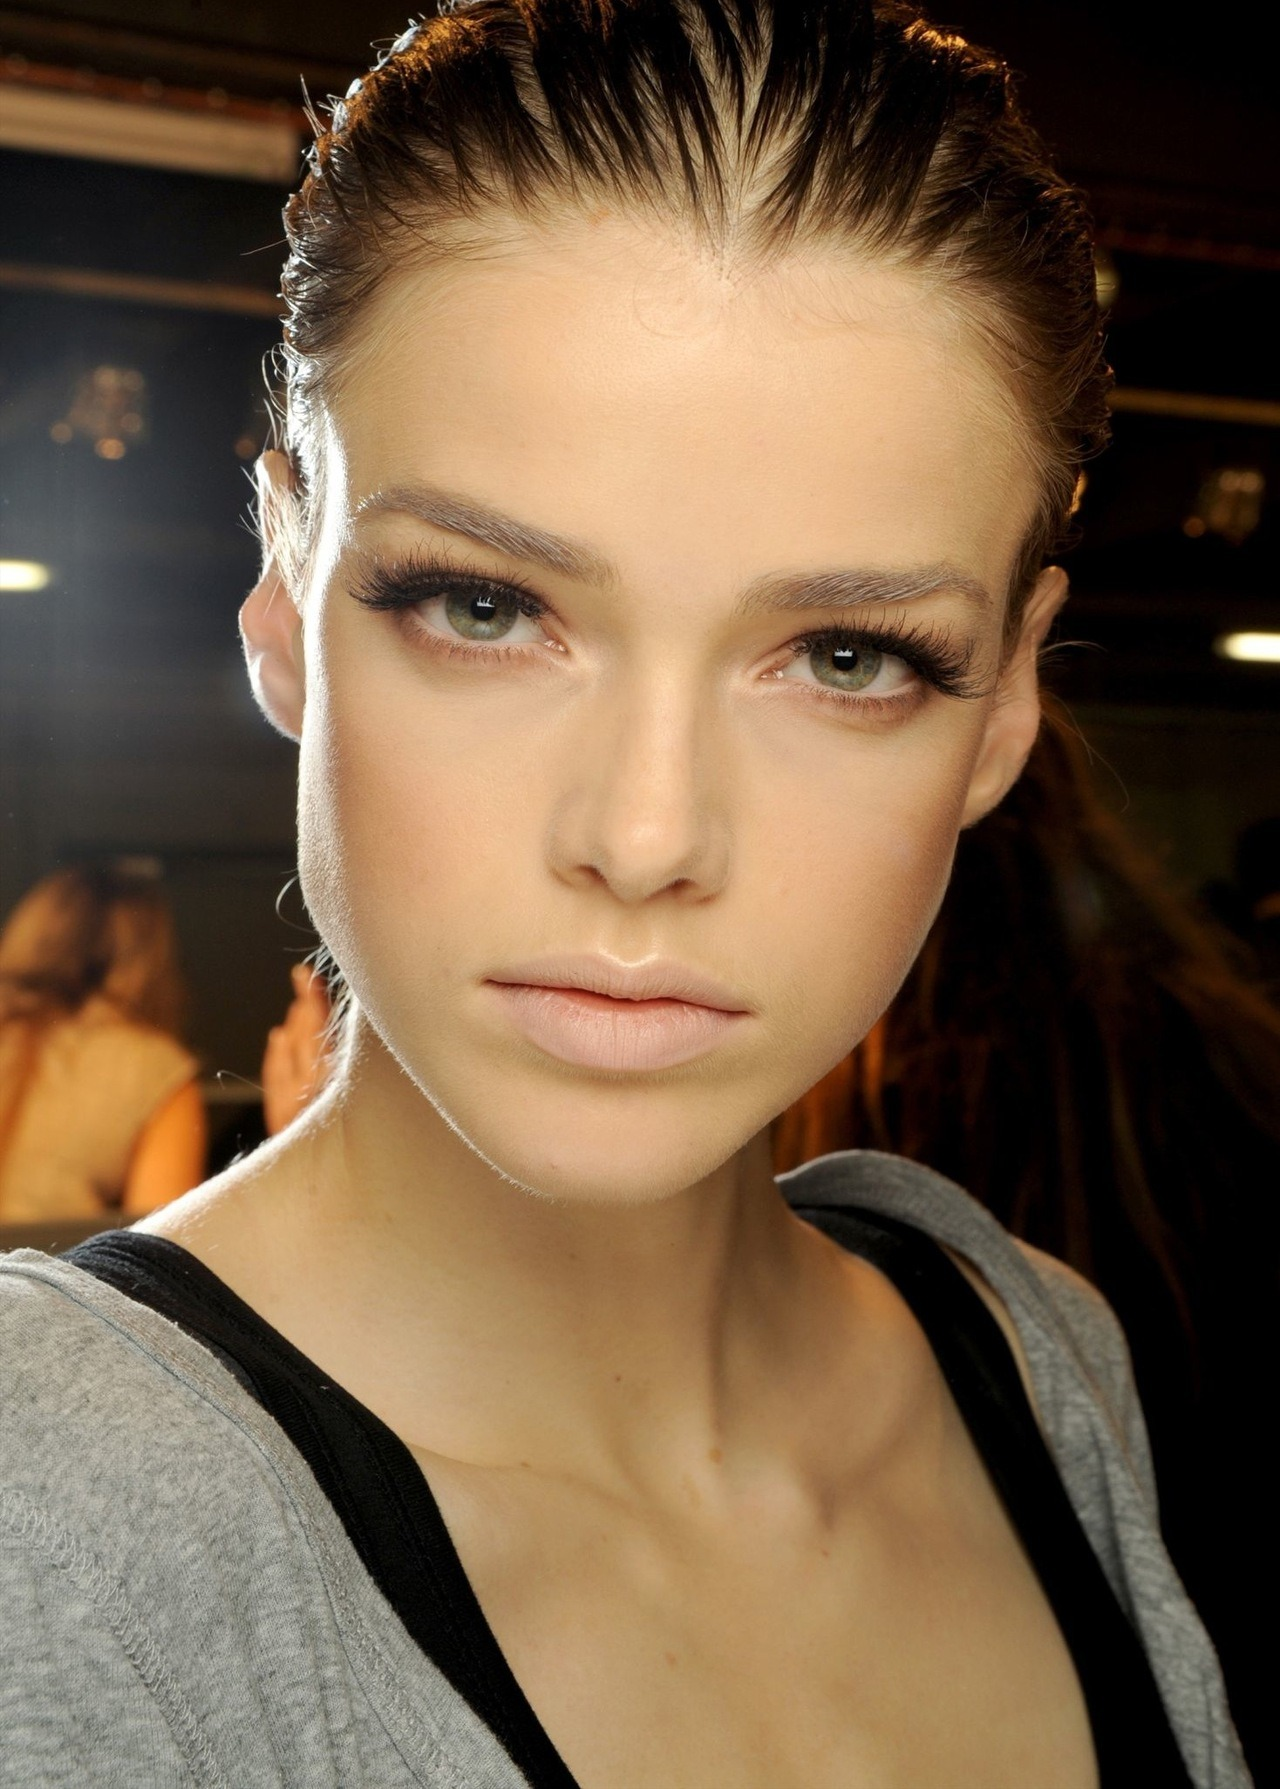 beauty-student:  Brilliant falsies.   Lanvin SS 11 beauty